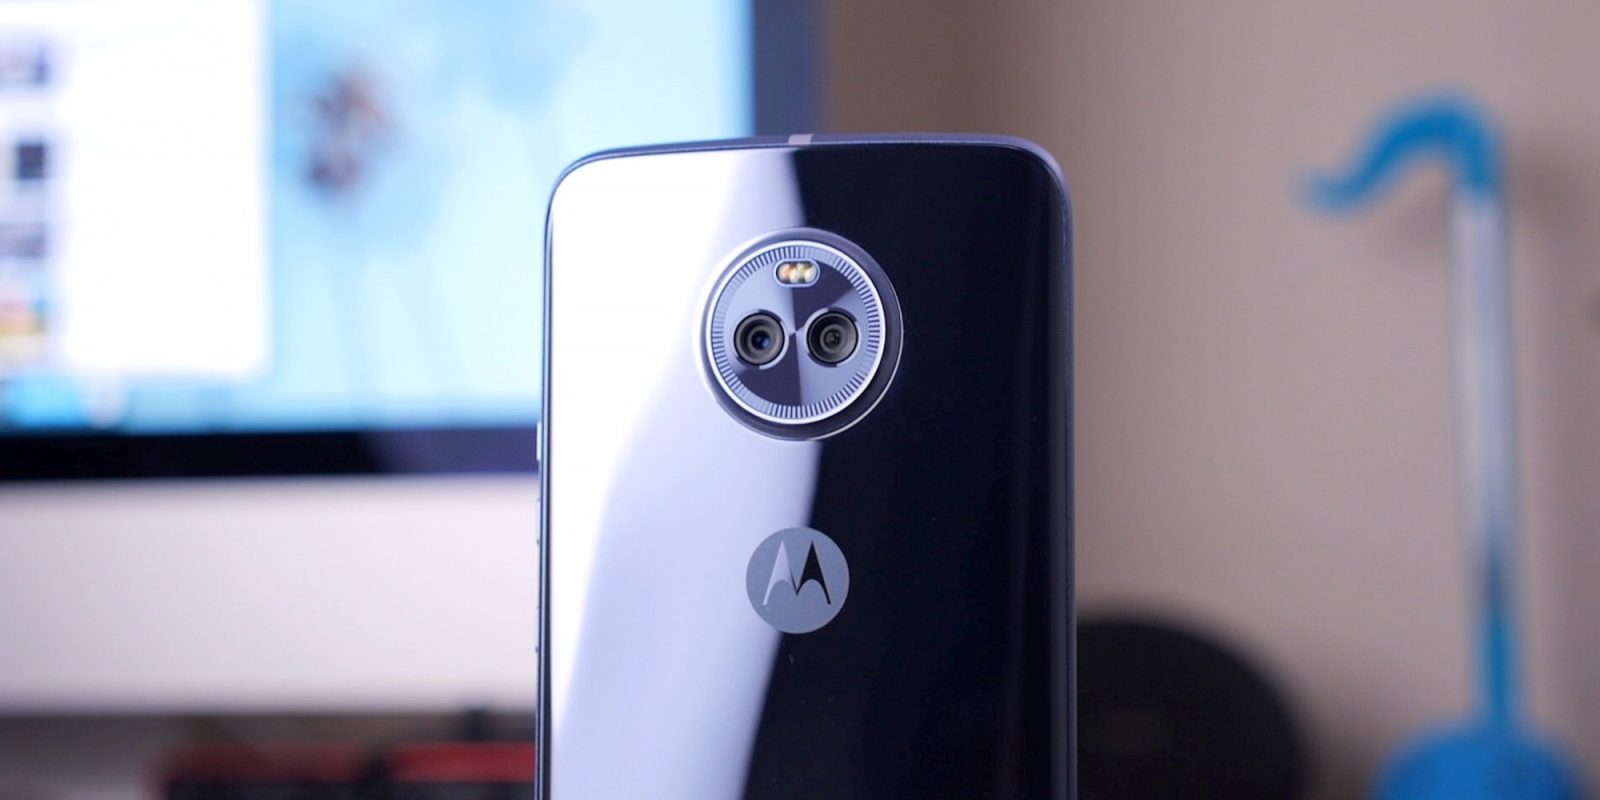 Review: Moto X4 revives the longstanding brand with less